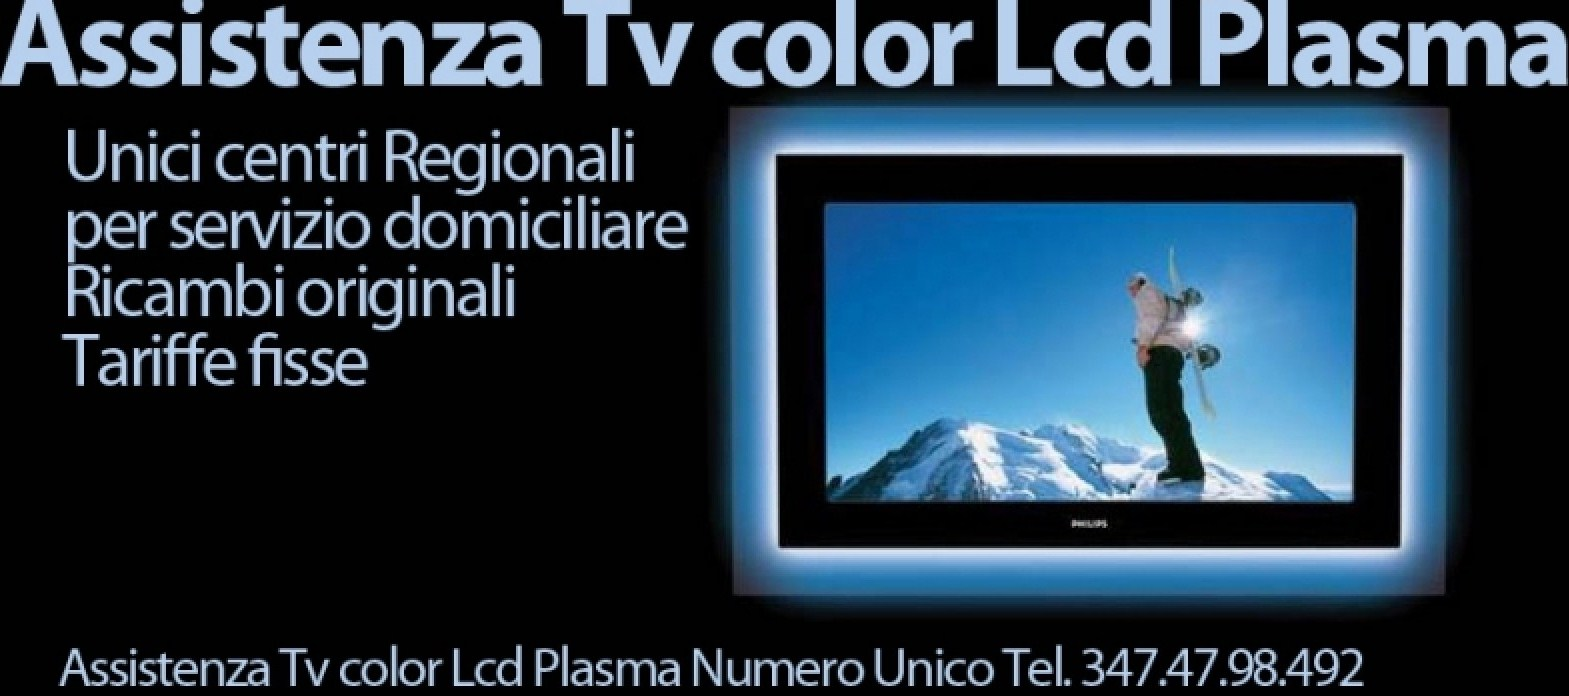 Centro Assistenza Philips Napoli.Sharp Assistenza Tv Color Napoli Sharp Assistenza Tv Lcd Numero